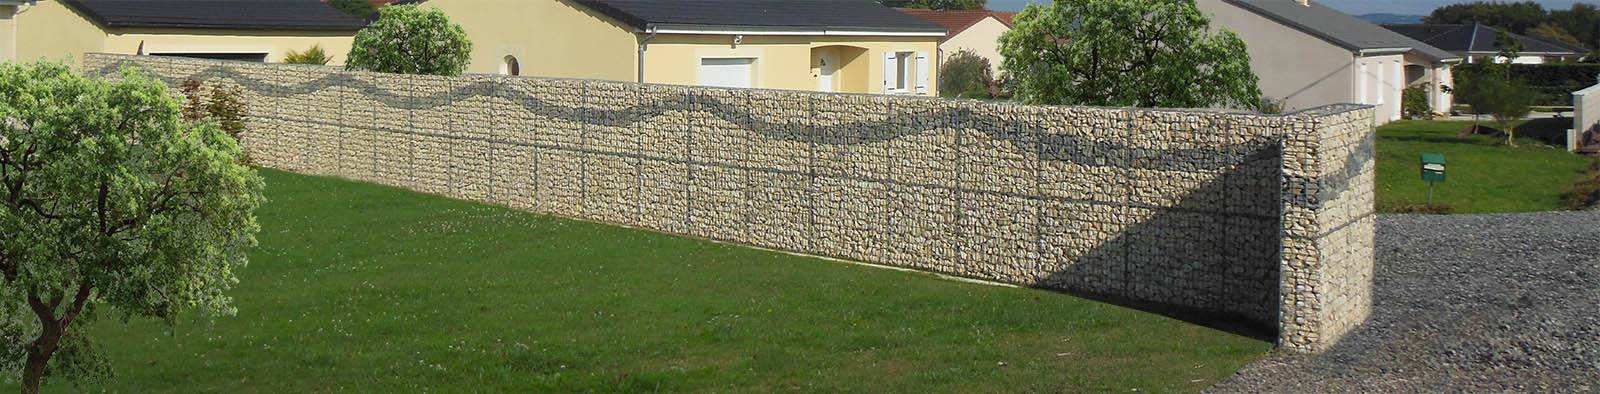 prix gabion rempli suisse. Black Bedroom Furniture Sets. Home Design Ideas